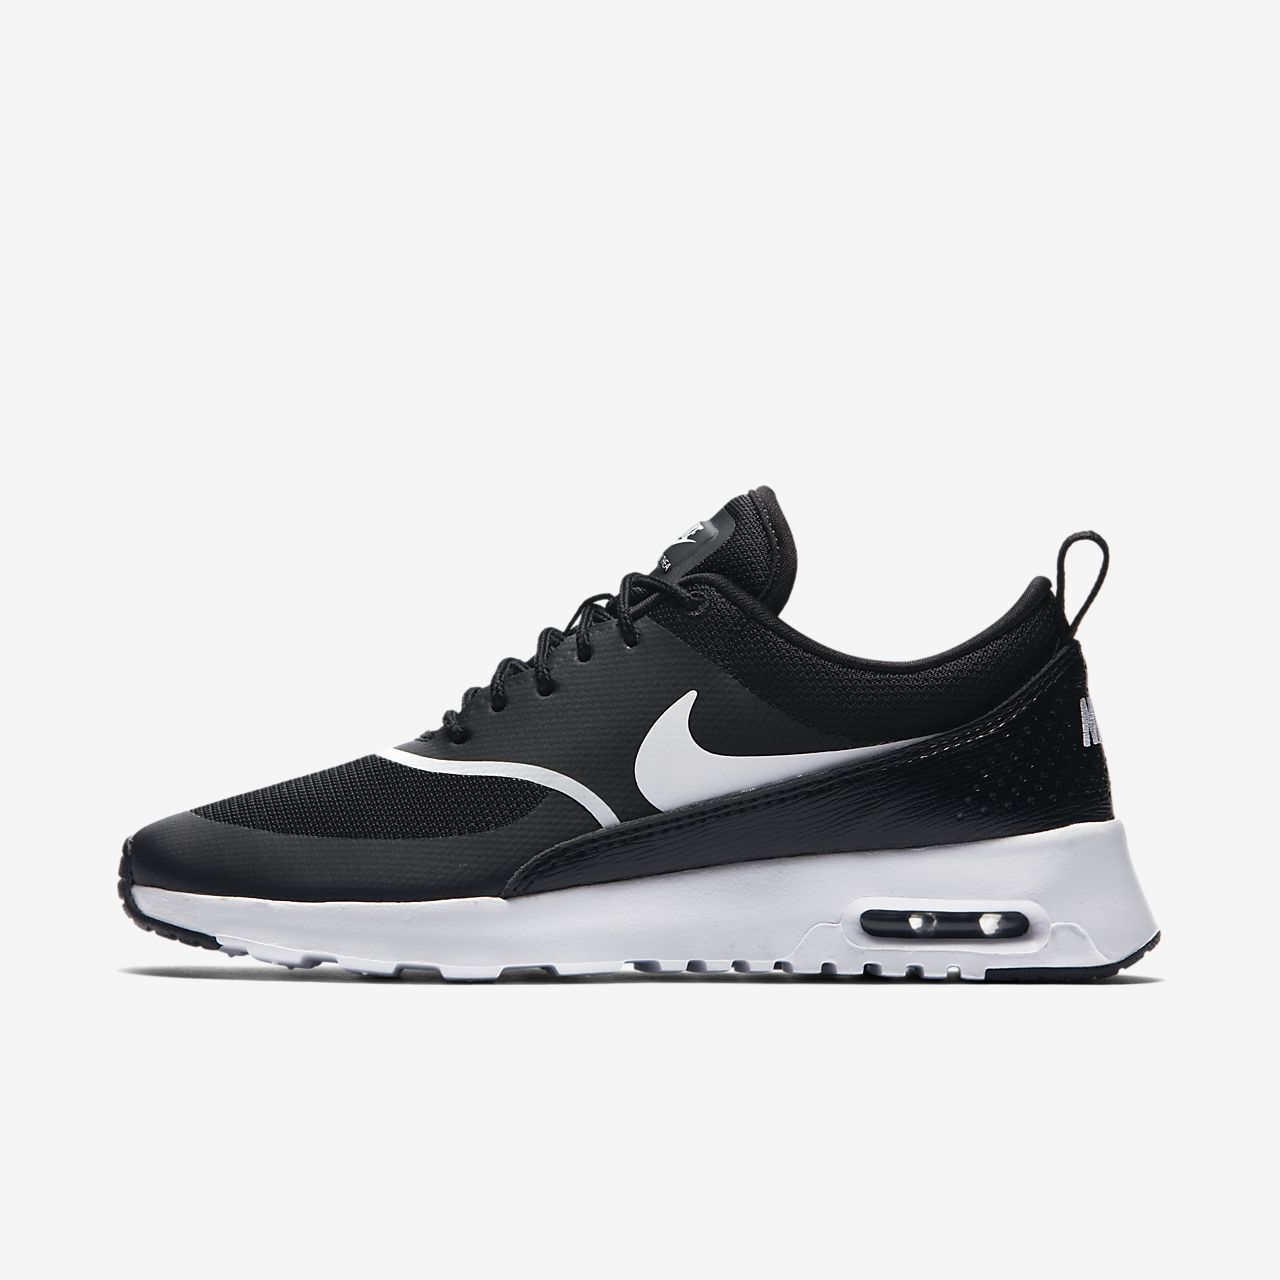 new products 657c6 19413 Women s Shoe. Nike Air Max Thea